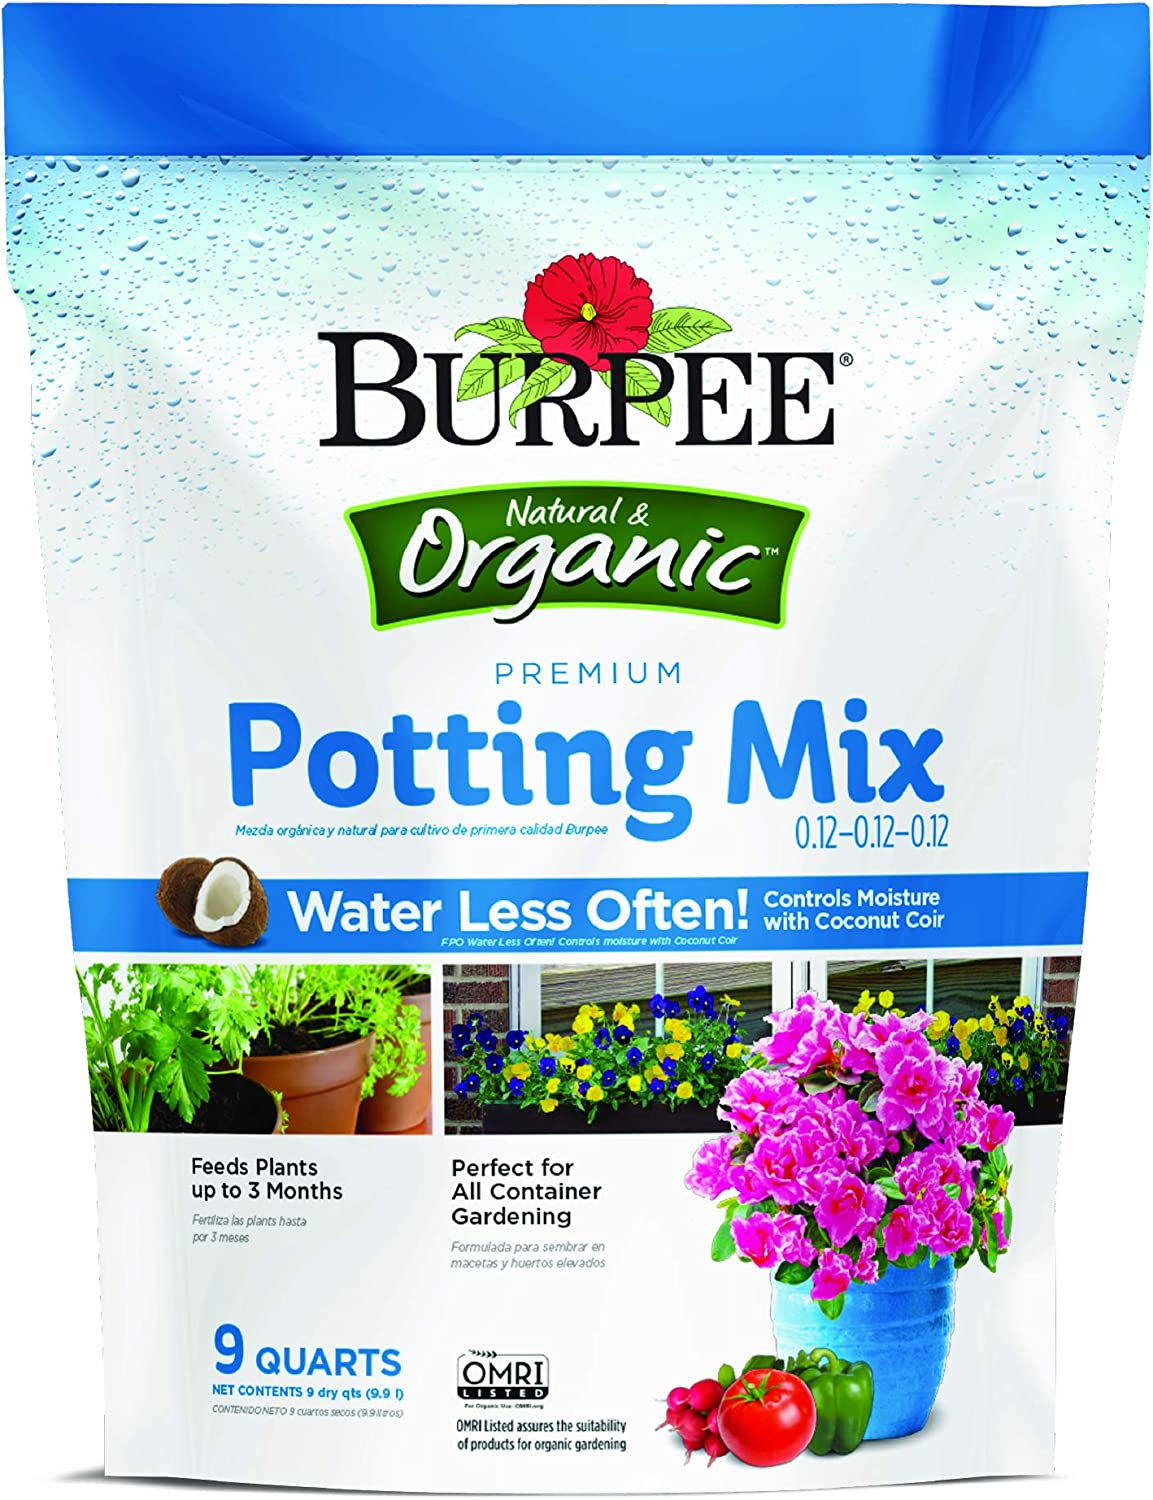 A clear image of the Burpee Premium Organic Potting Mix packaging.